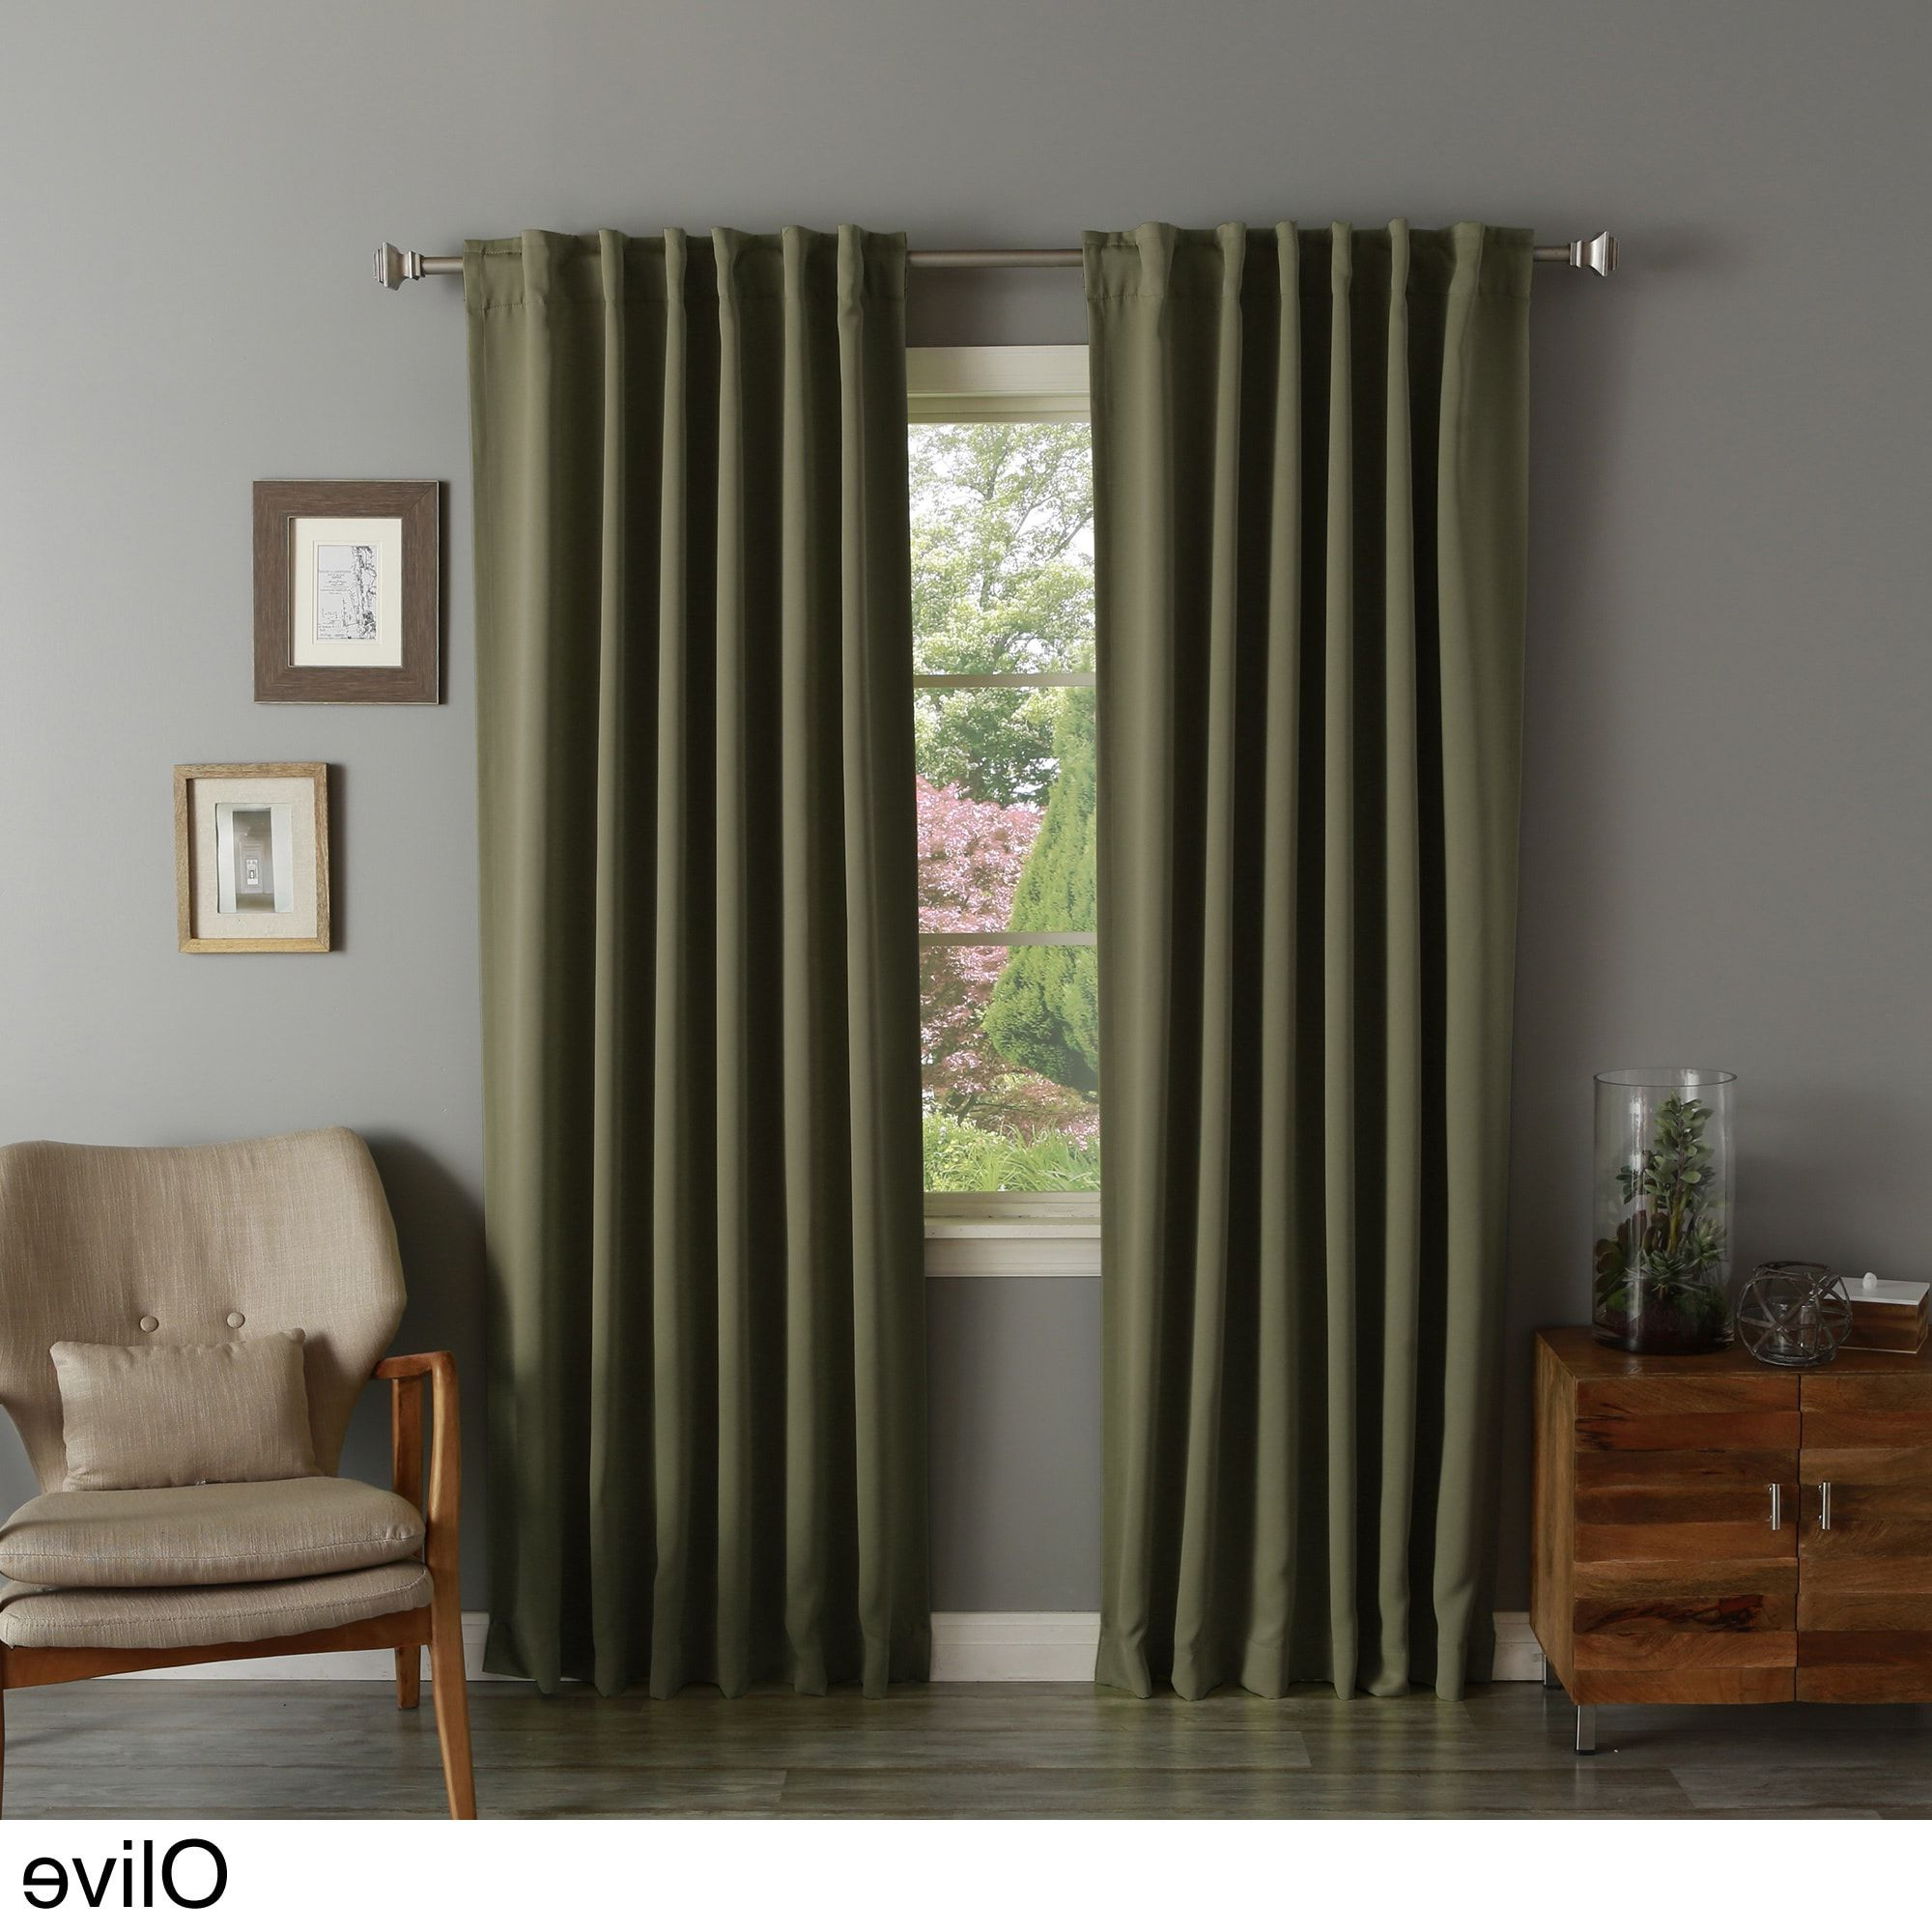 Aurora Home Solid Insulated Thermal Blackout Long Length With Recent Solid Insulated Thermal Blackout Long Length Curtain Panel Pairs (View 5 of 20)